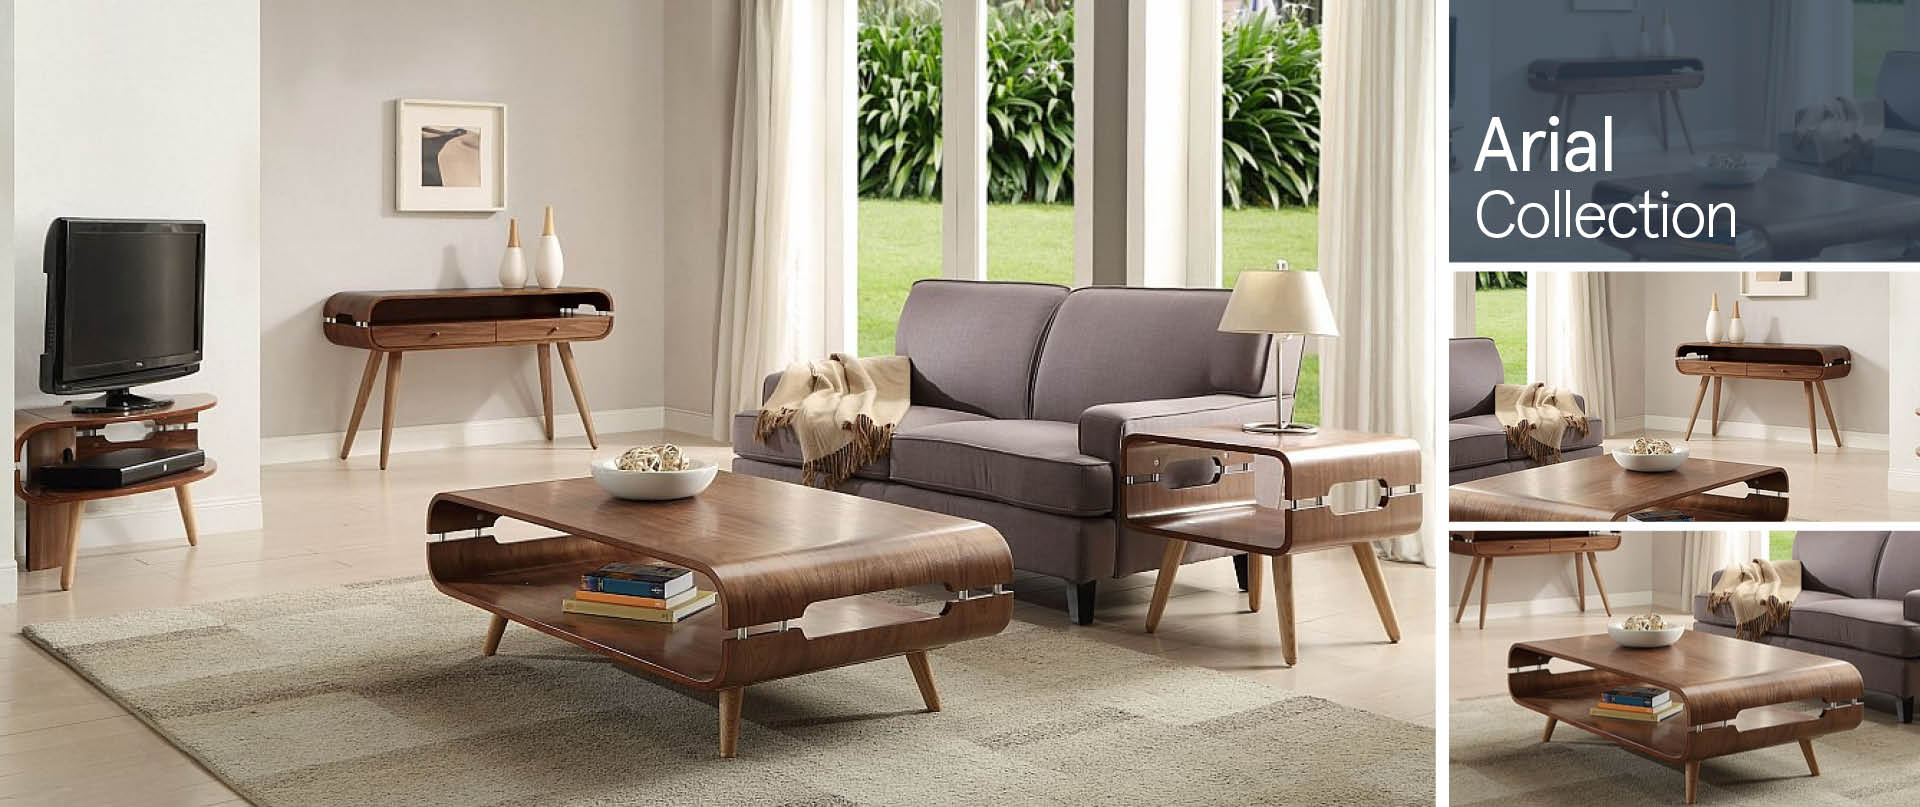 Arial Living Room Furniture Ranges